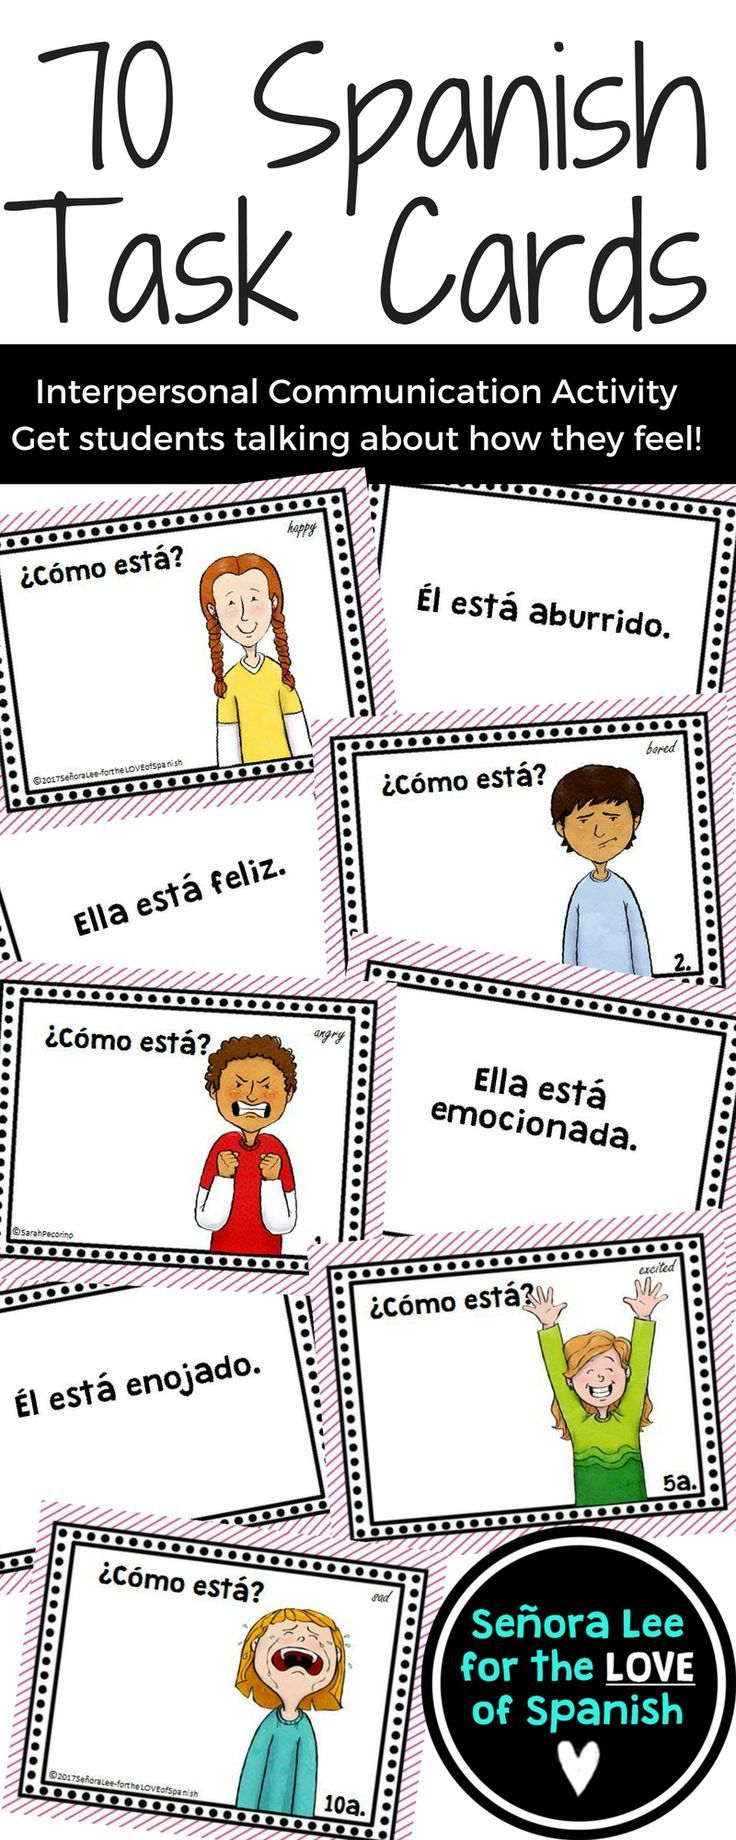 Spanish Emotions Task Cards Interpersonal Communication Activity Express Your Feelings In S Teaching Spanish Middle School Spanish Lessons Learning Spanish [ 1840 x 736 Pixel ]